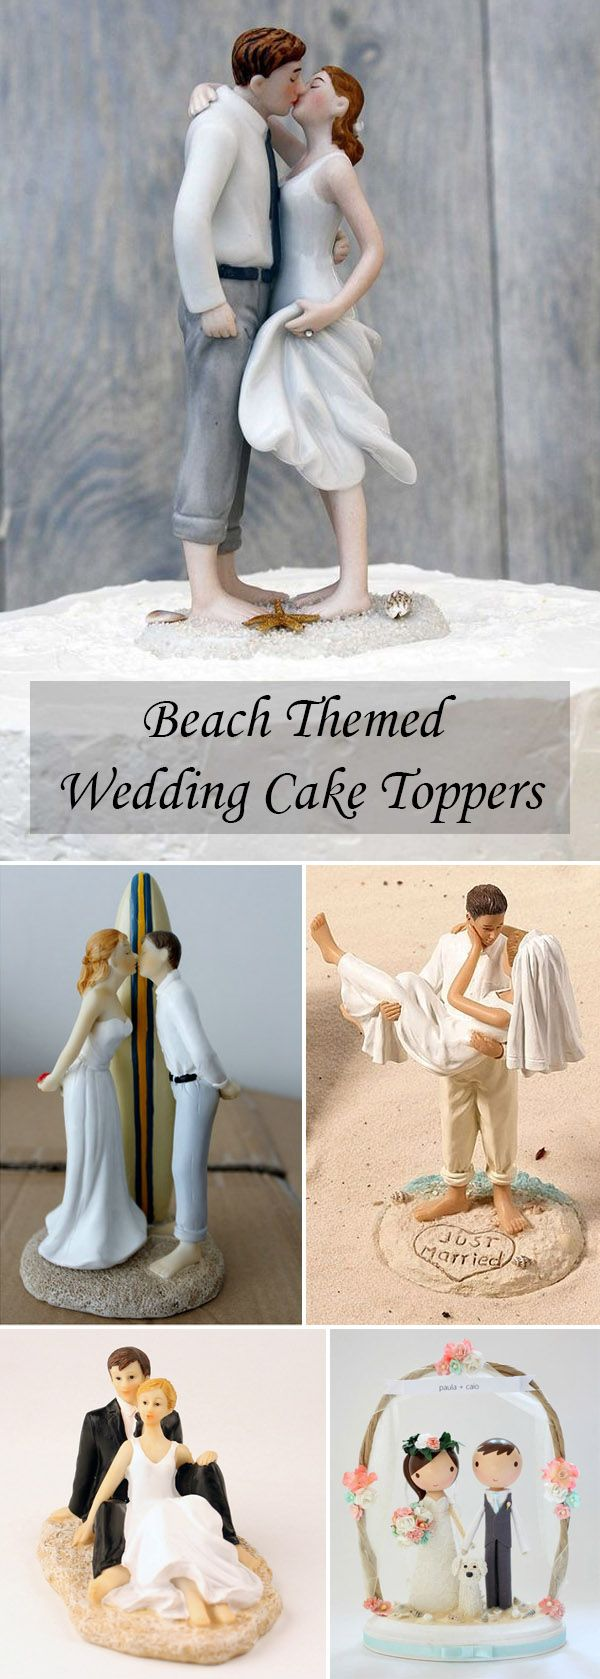 Charmant Beach Themed Wedding Cake Toppers Ideas